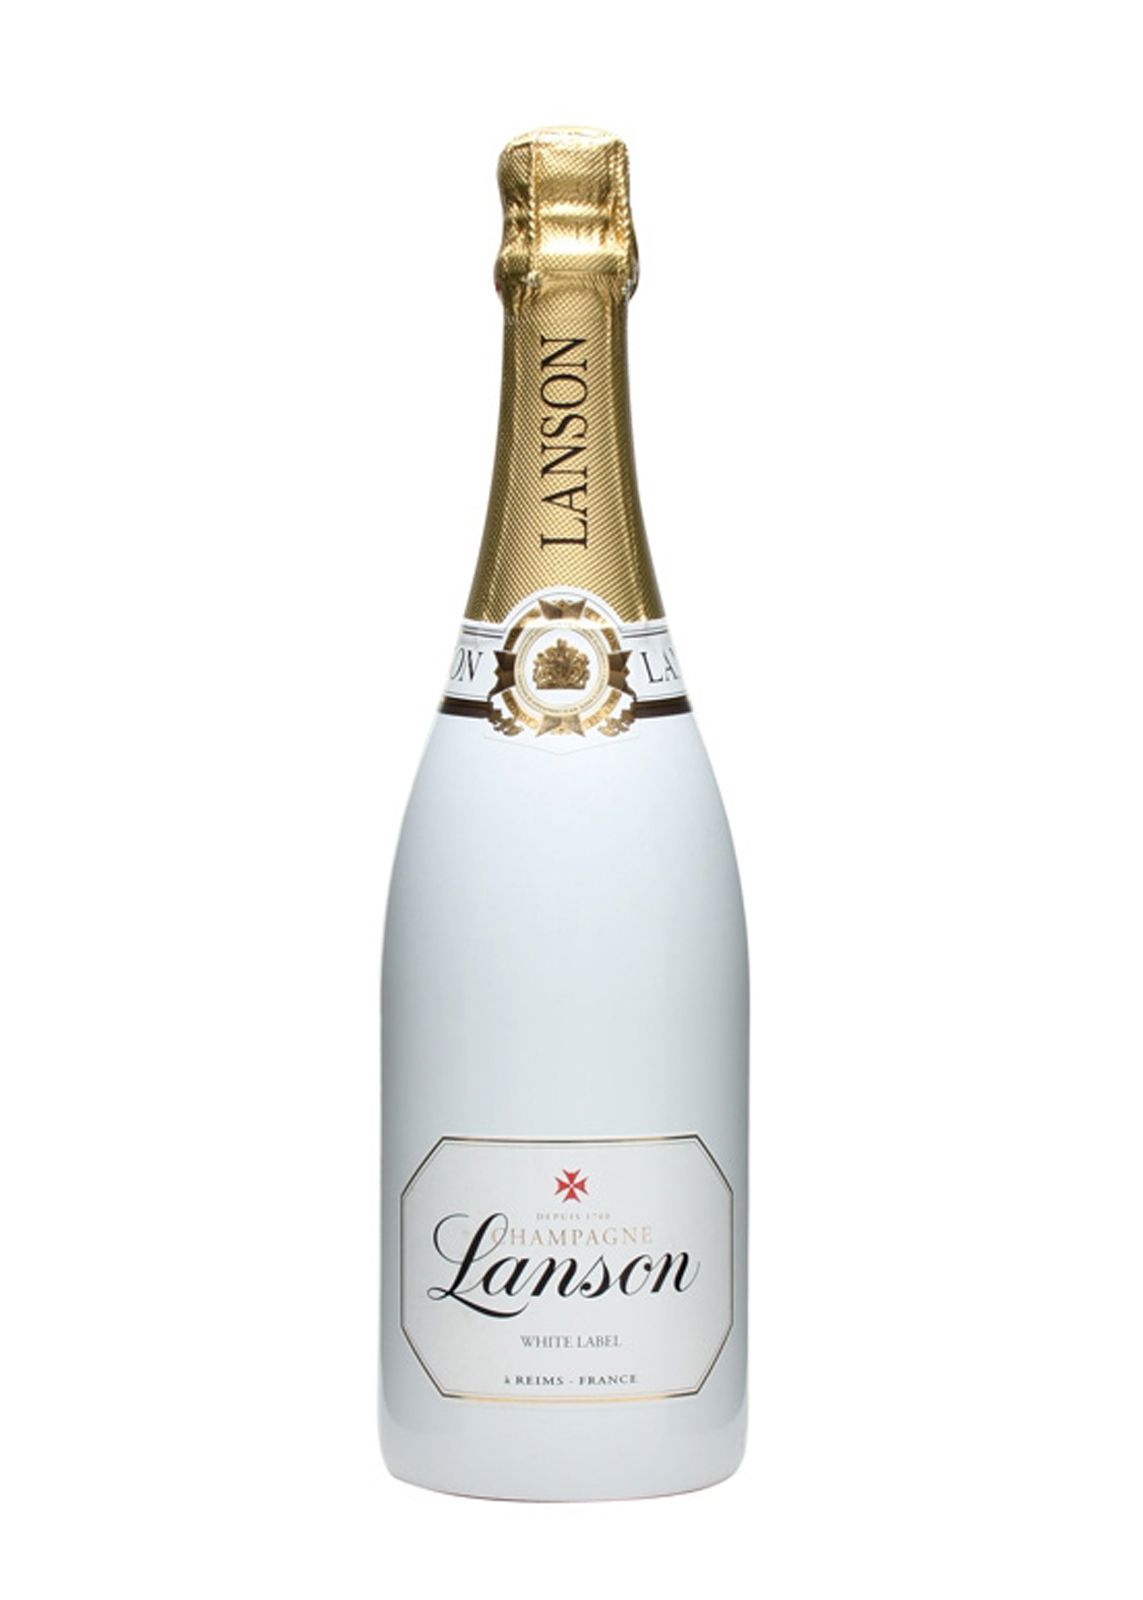 Lanson White Label Sec Dry 75cl France Champagne Champagneglasses Wine Wineglasses Bottle Champagnebottle Lanson Champagne Bottle Wine Store Champagne